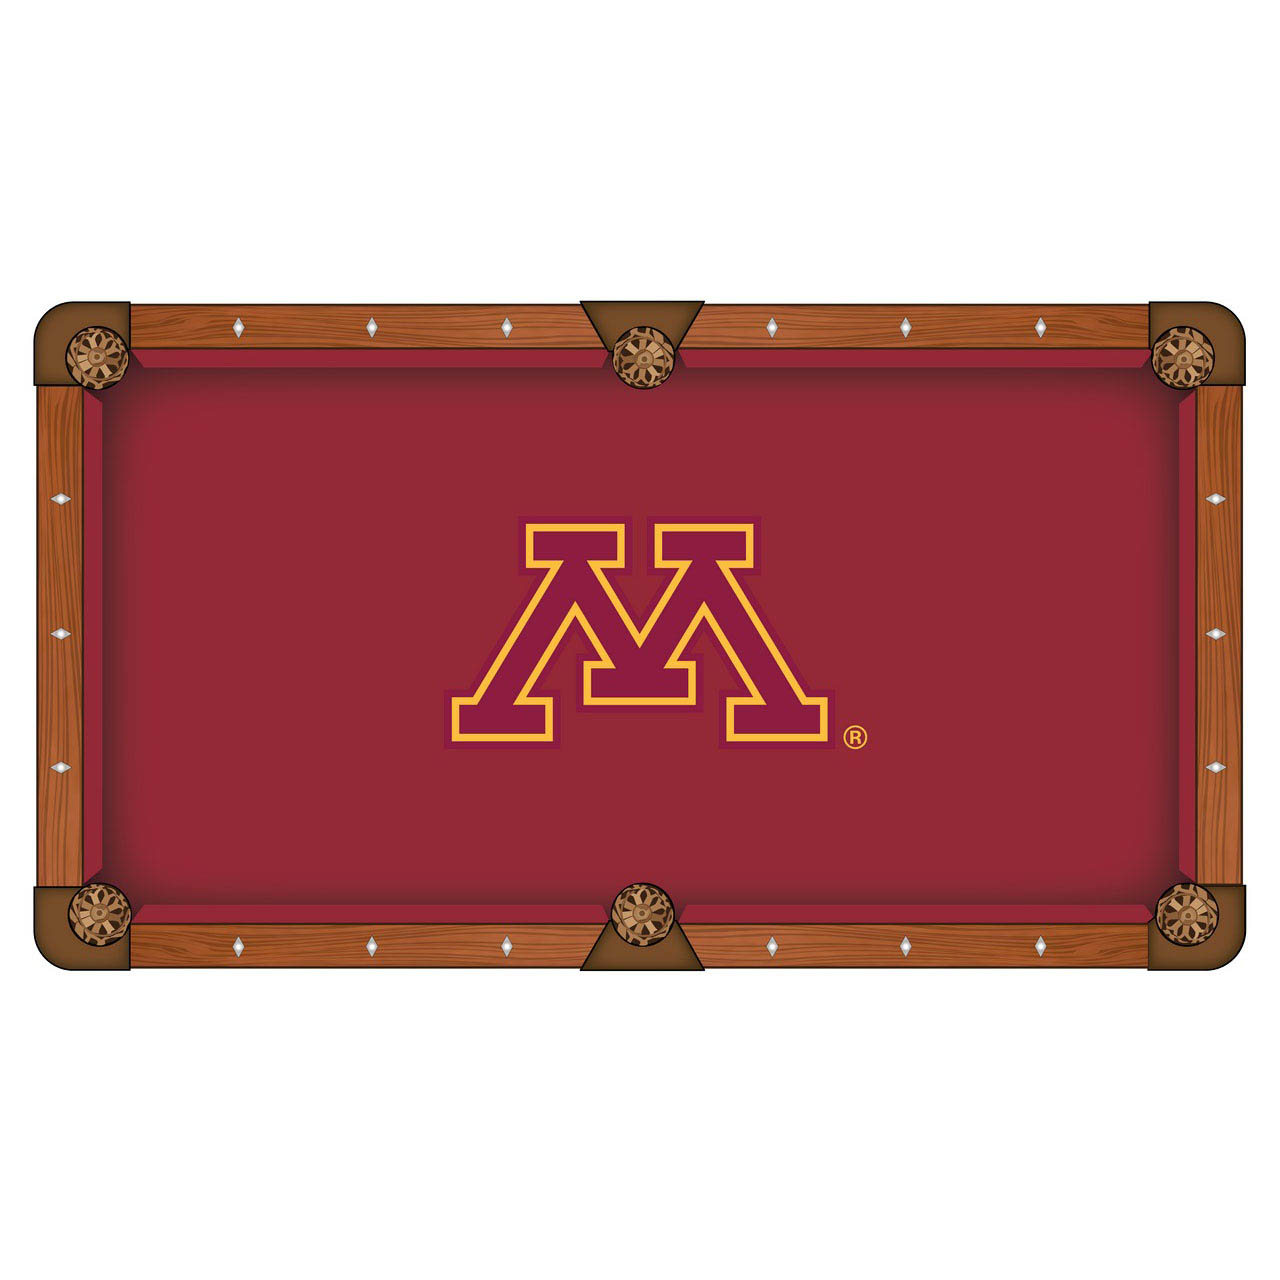 Exquisite University Minnesota Pool Table Cloth Product Photo